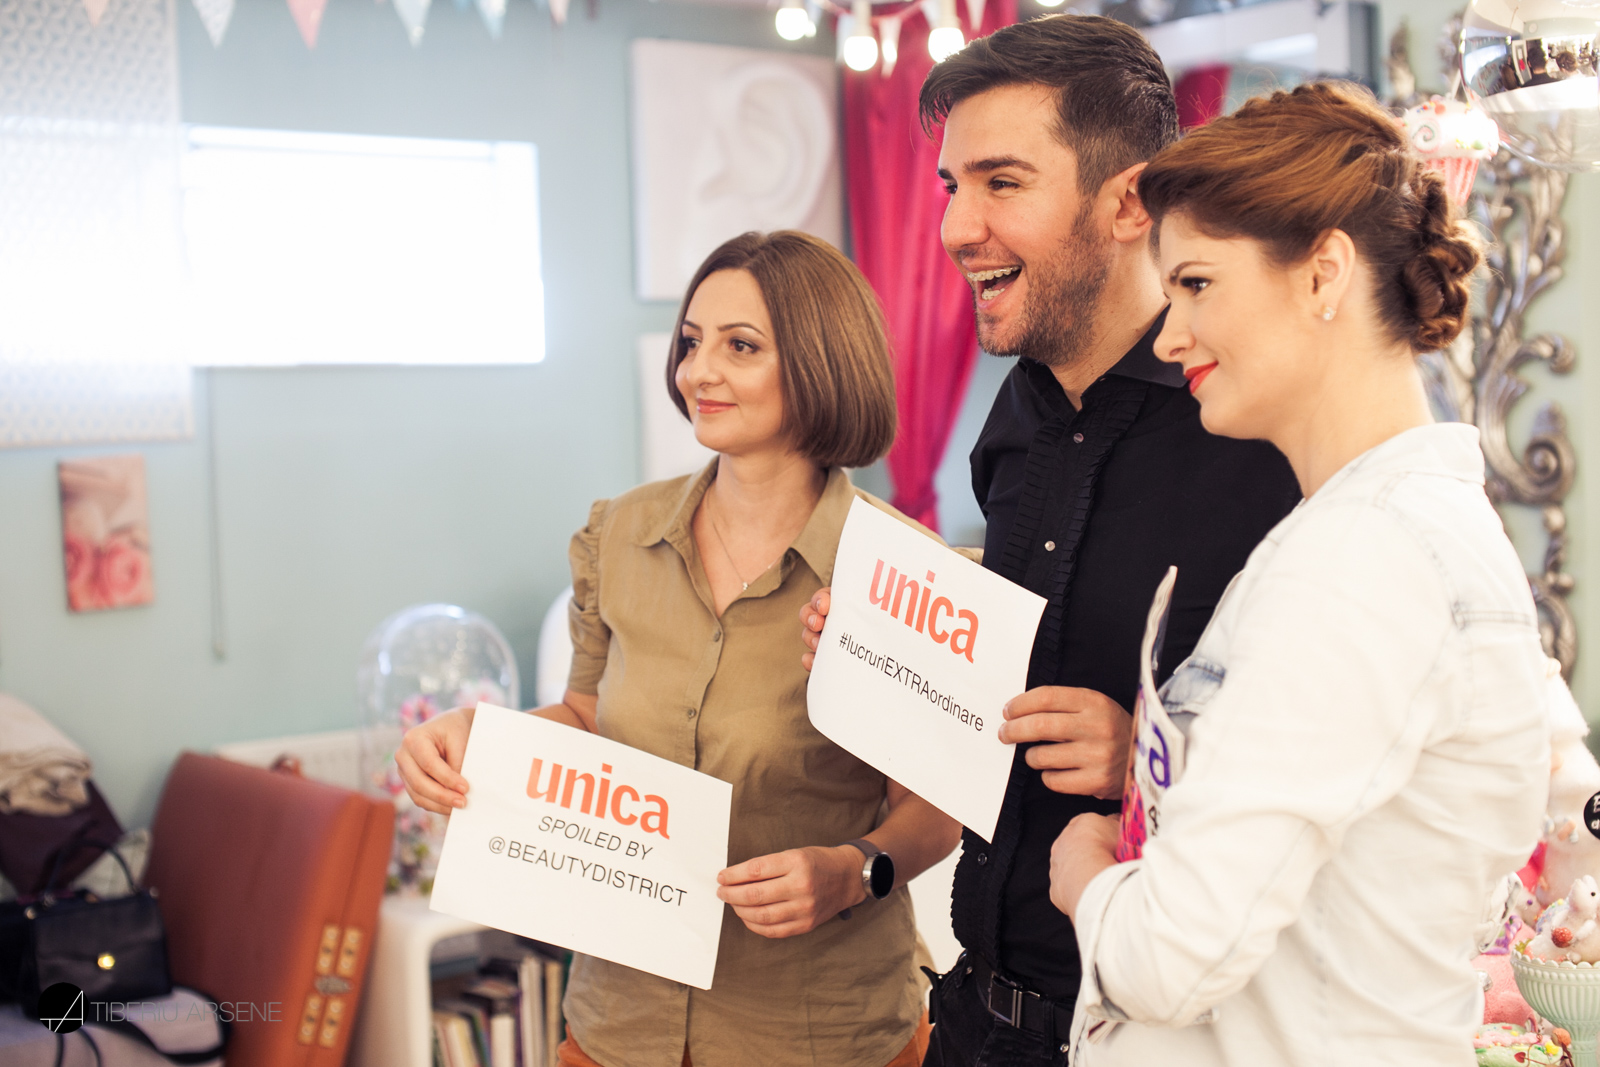 unica-18-party-2.jpg